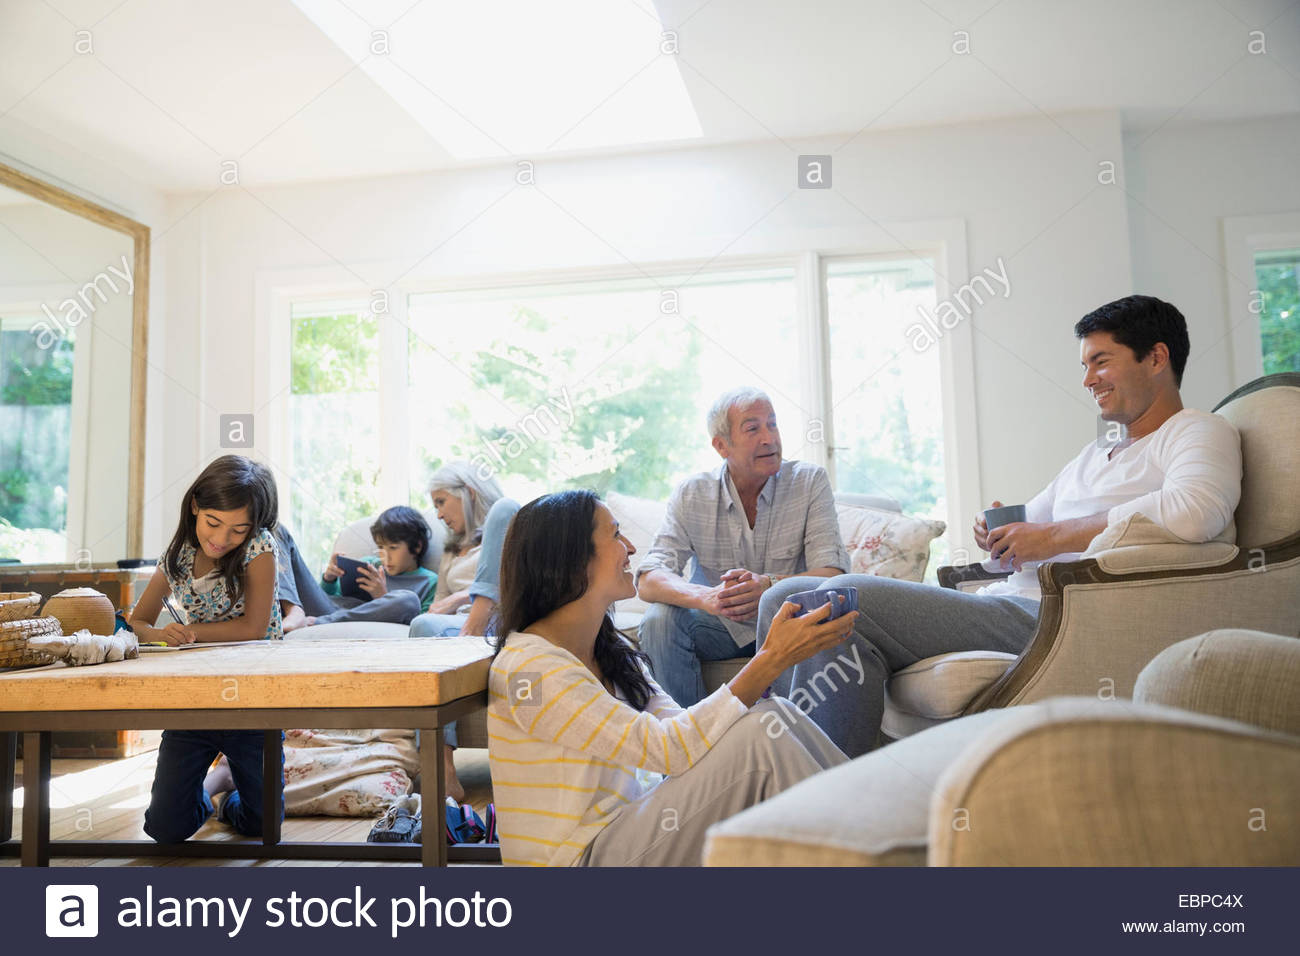 Multi-generation family relaxing in living room - Stock Image